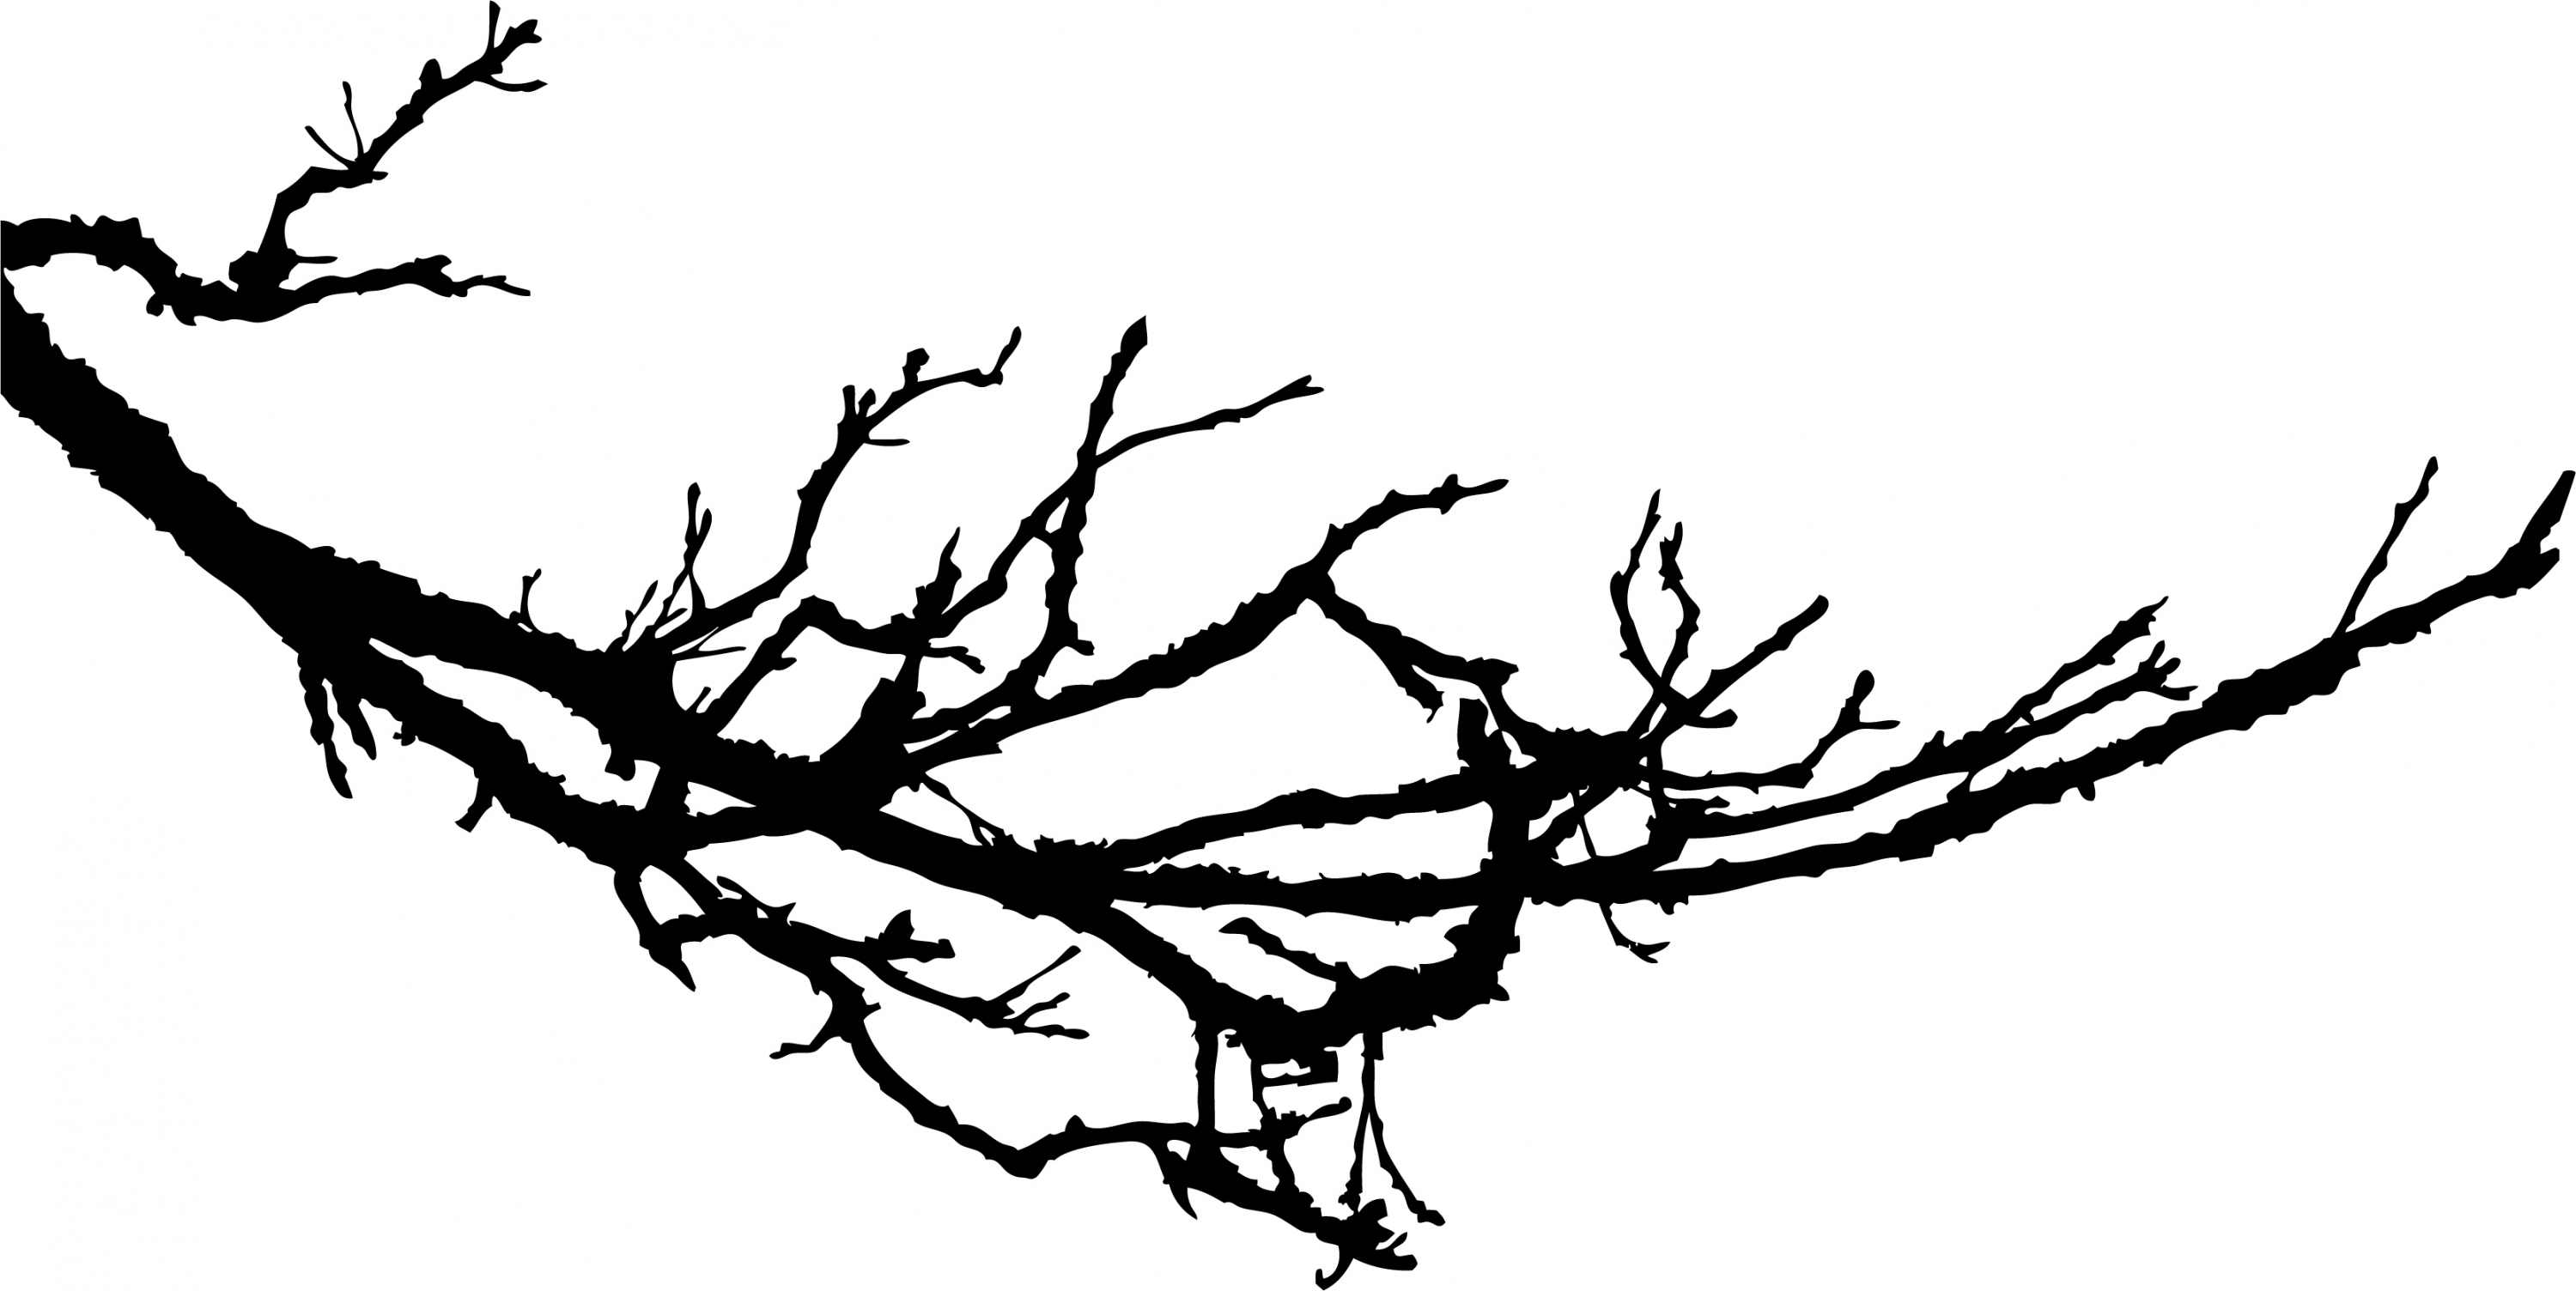 Single tree branch clipart vector library Collection of Judicial clipart | Free download best Judicial clipart ... vector library